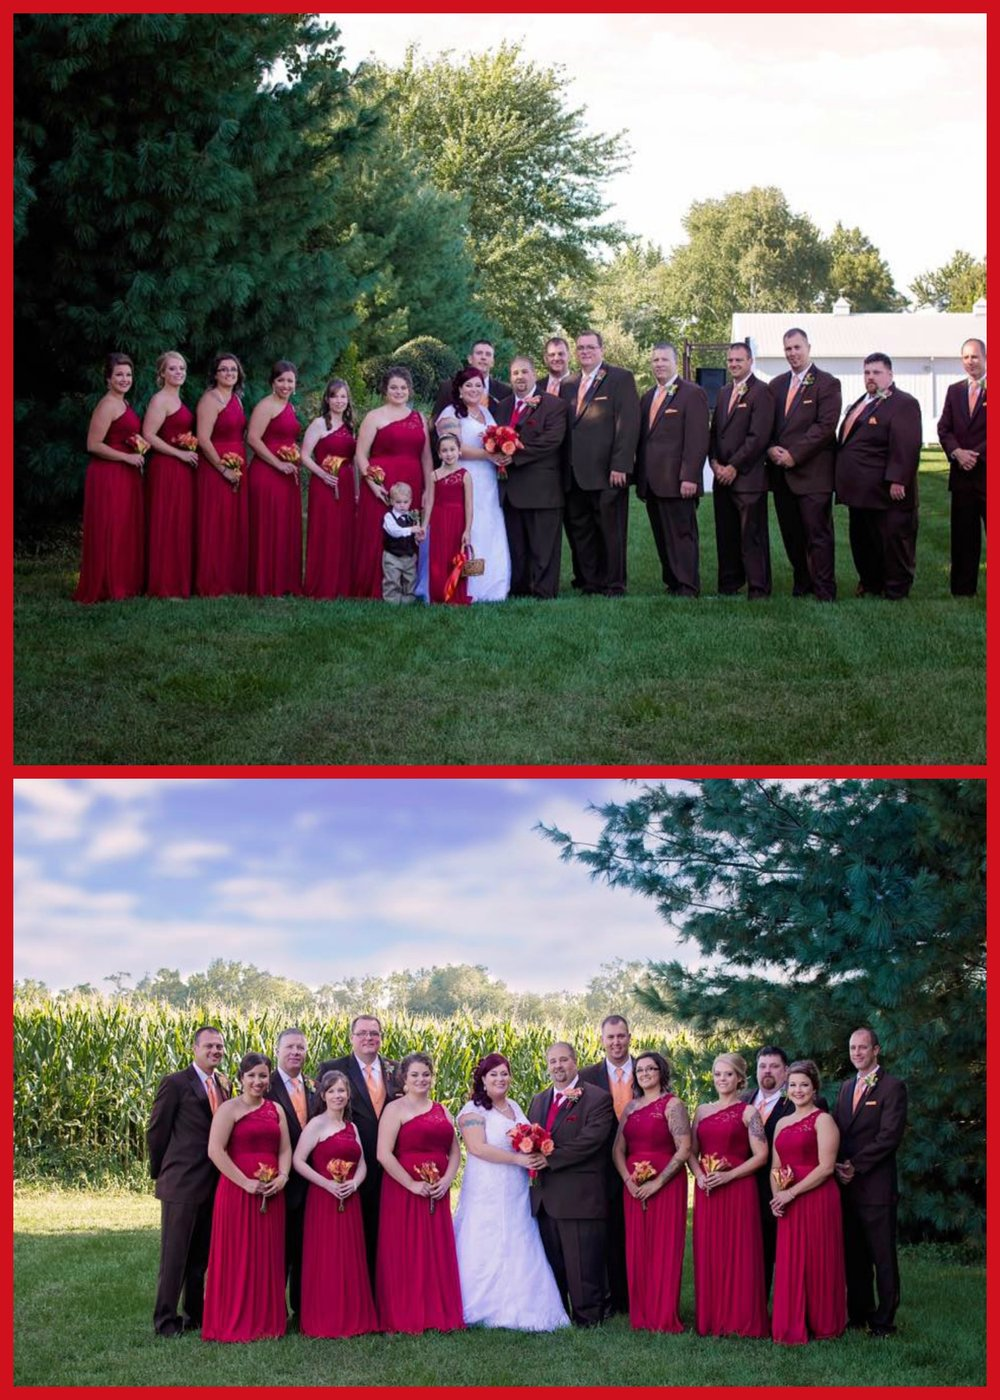 Images by Trisha K. Photography